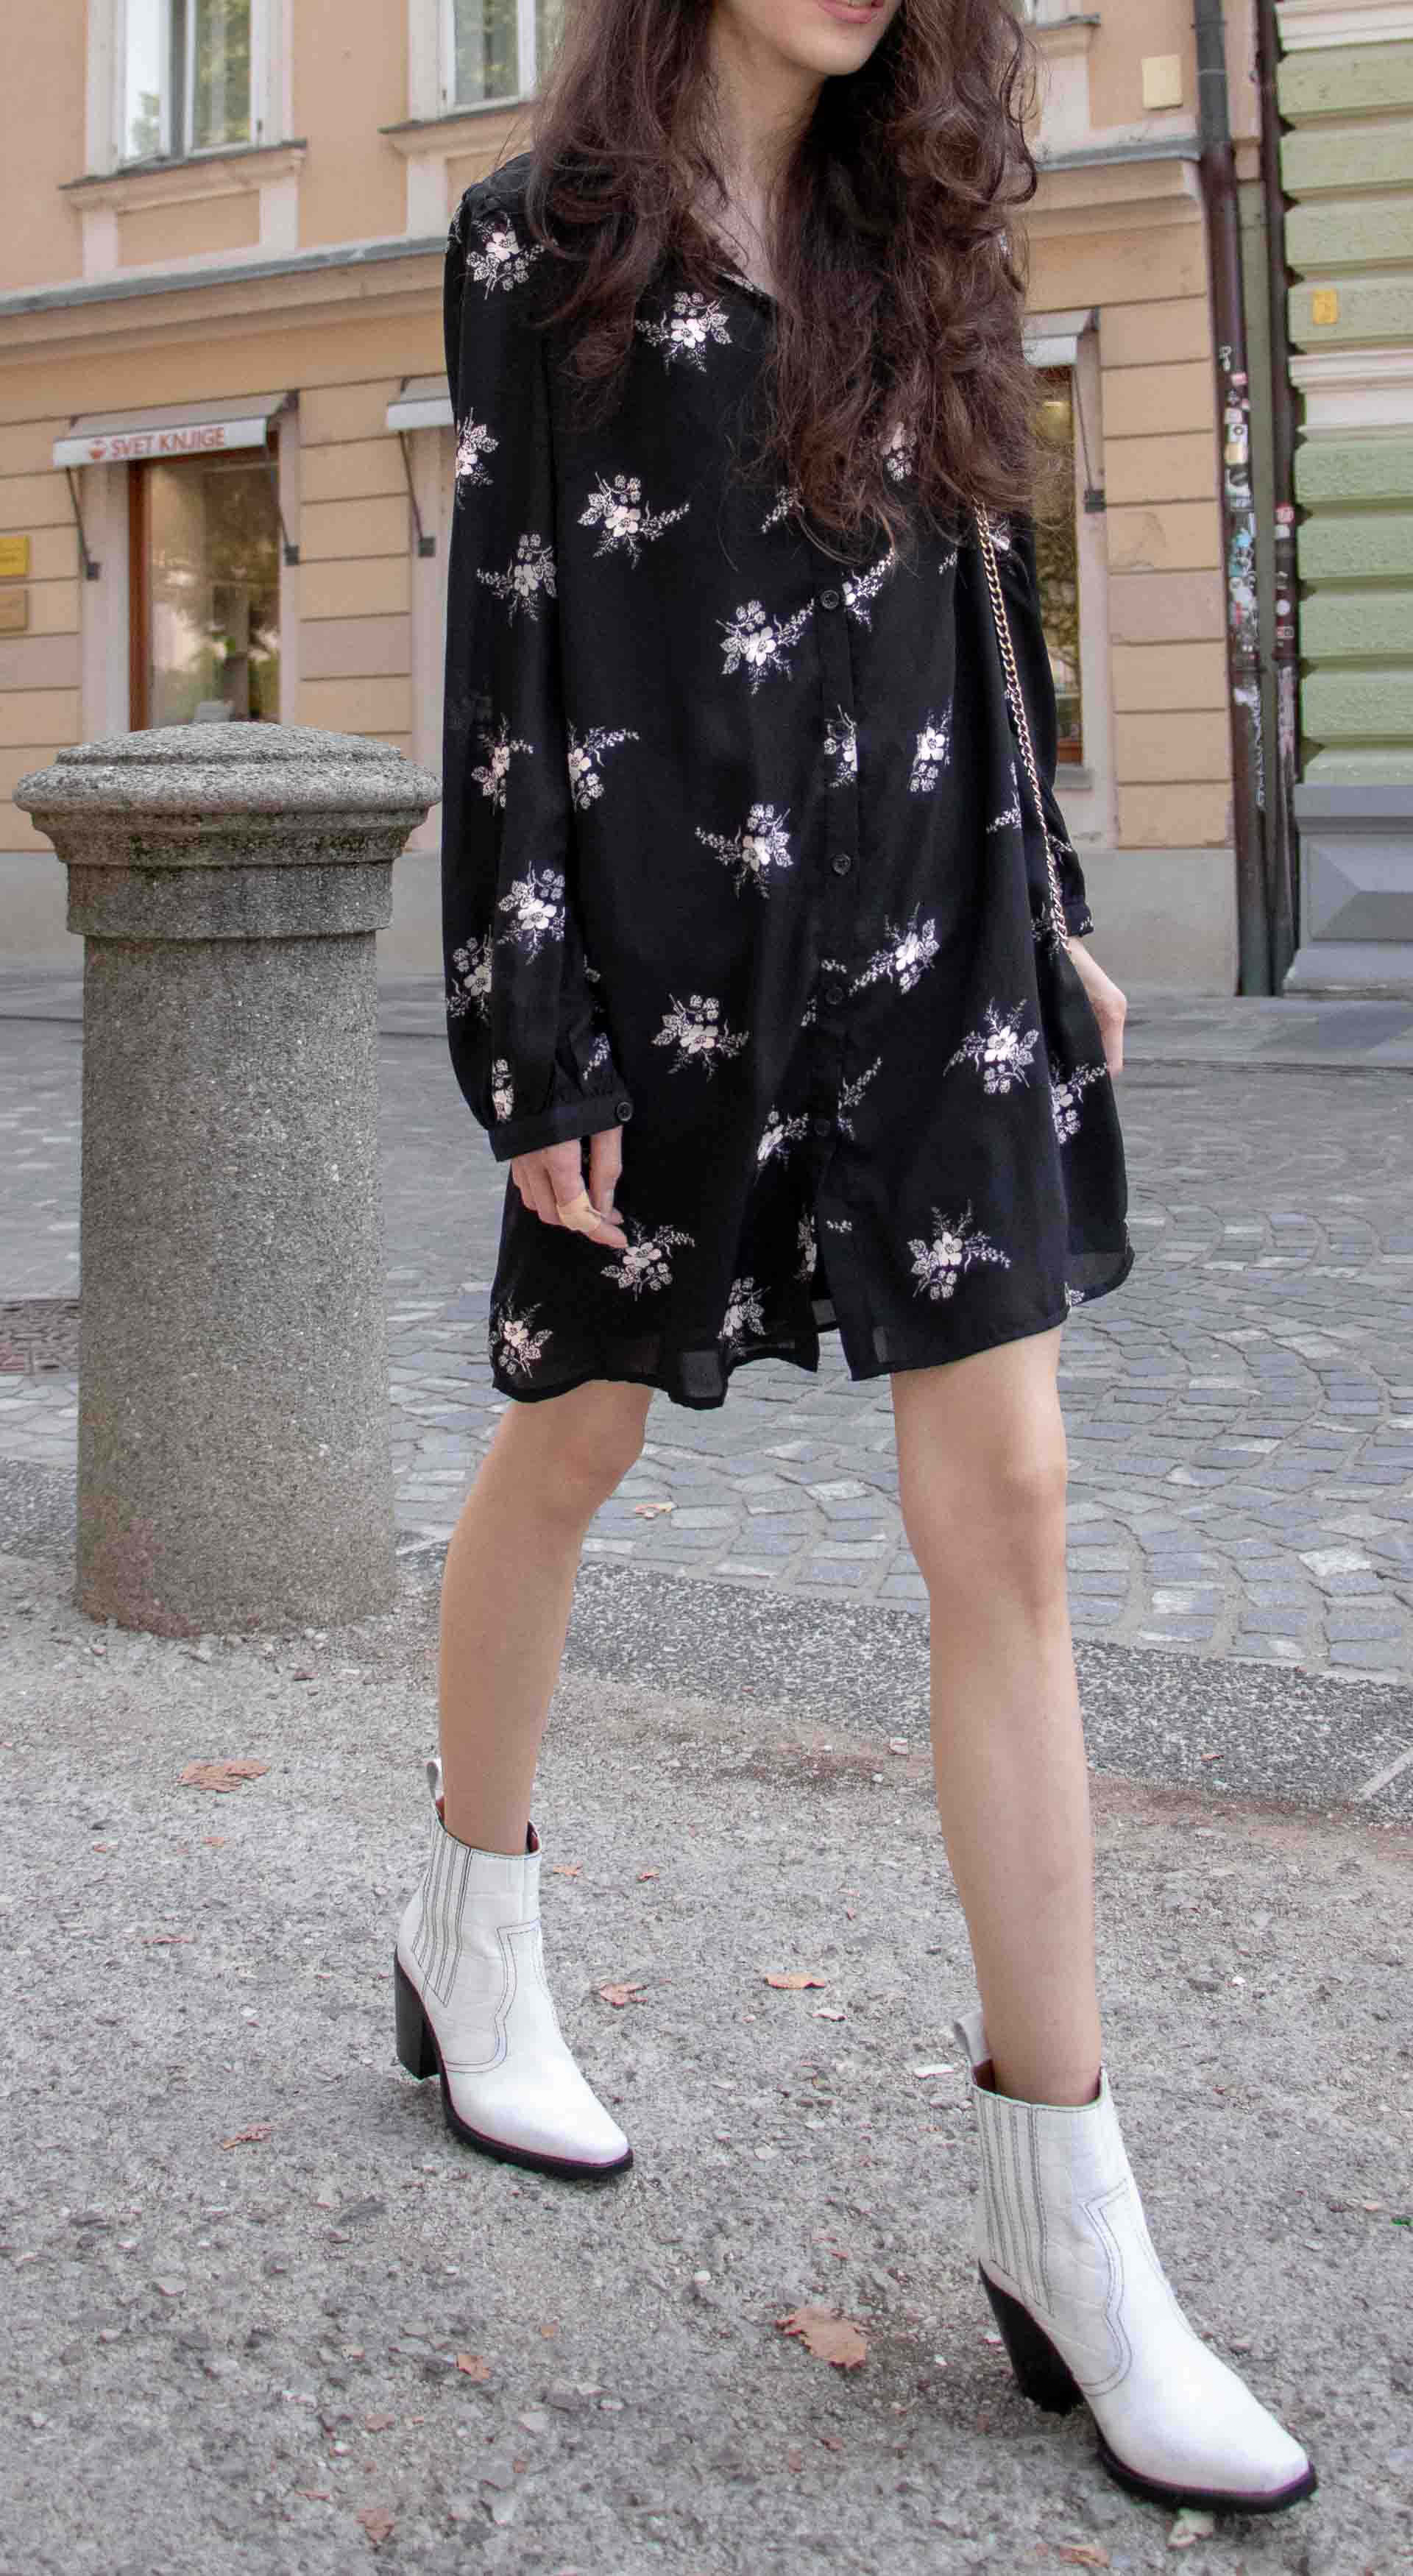 Beautiful Slovenian Fashion Blogger Veronika Lipar of Brunette from Wall wearing dark floral shirtdress with white Ganni cowboy boots, white chain shoulder bag in Fall on the street in Ljubljana